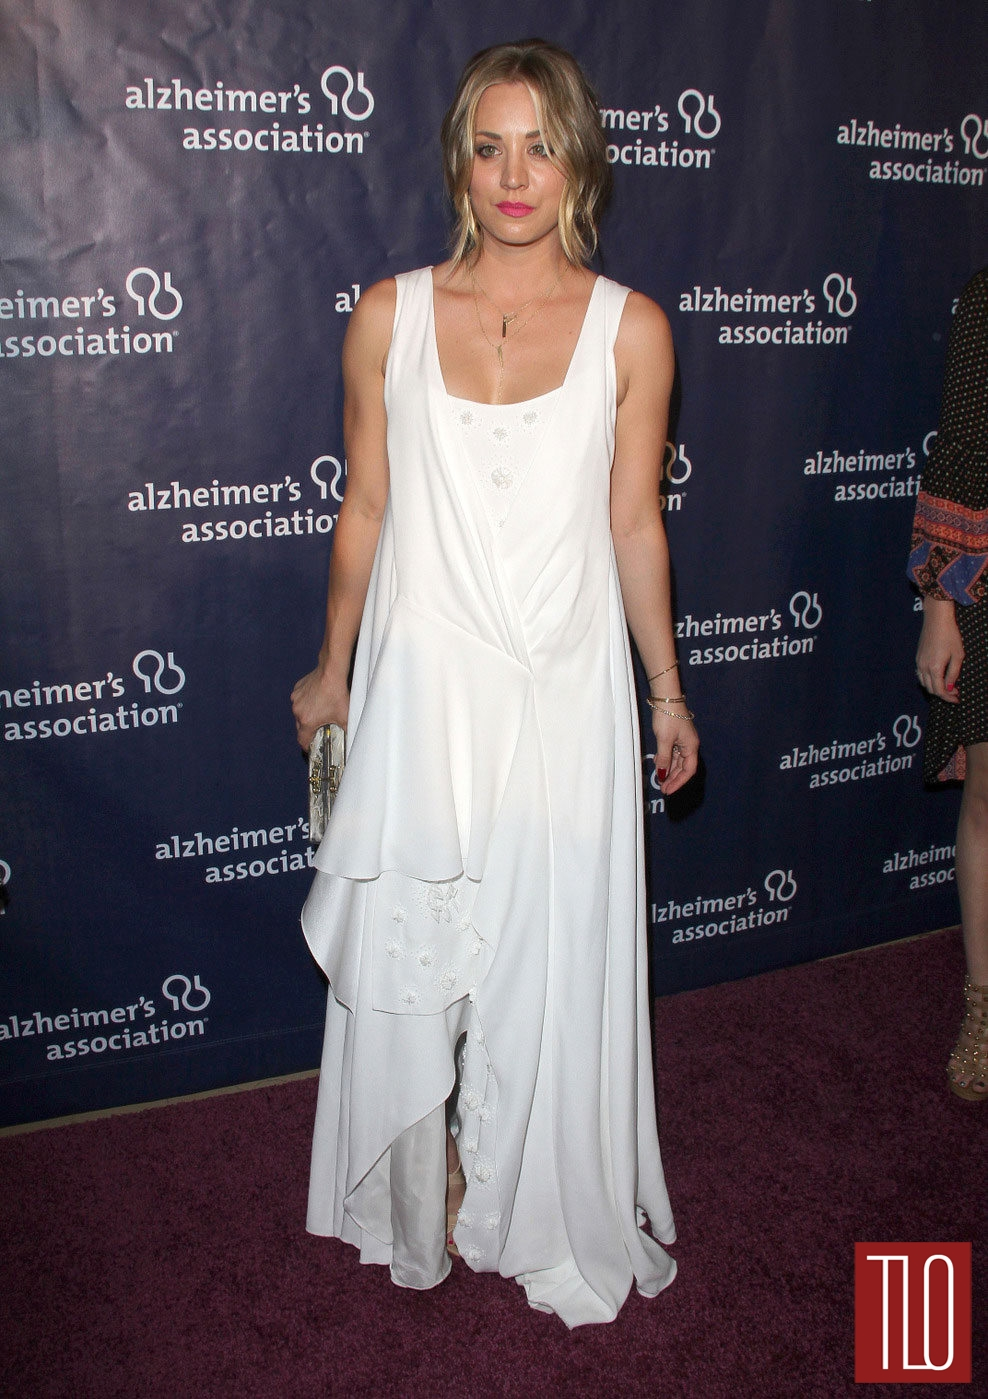 Kaley-Cuoco-Night-Sardis-Beneift-Tom-Lorenzo-Site-TLO (1)